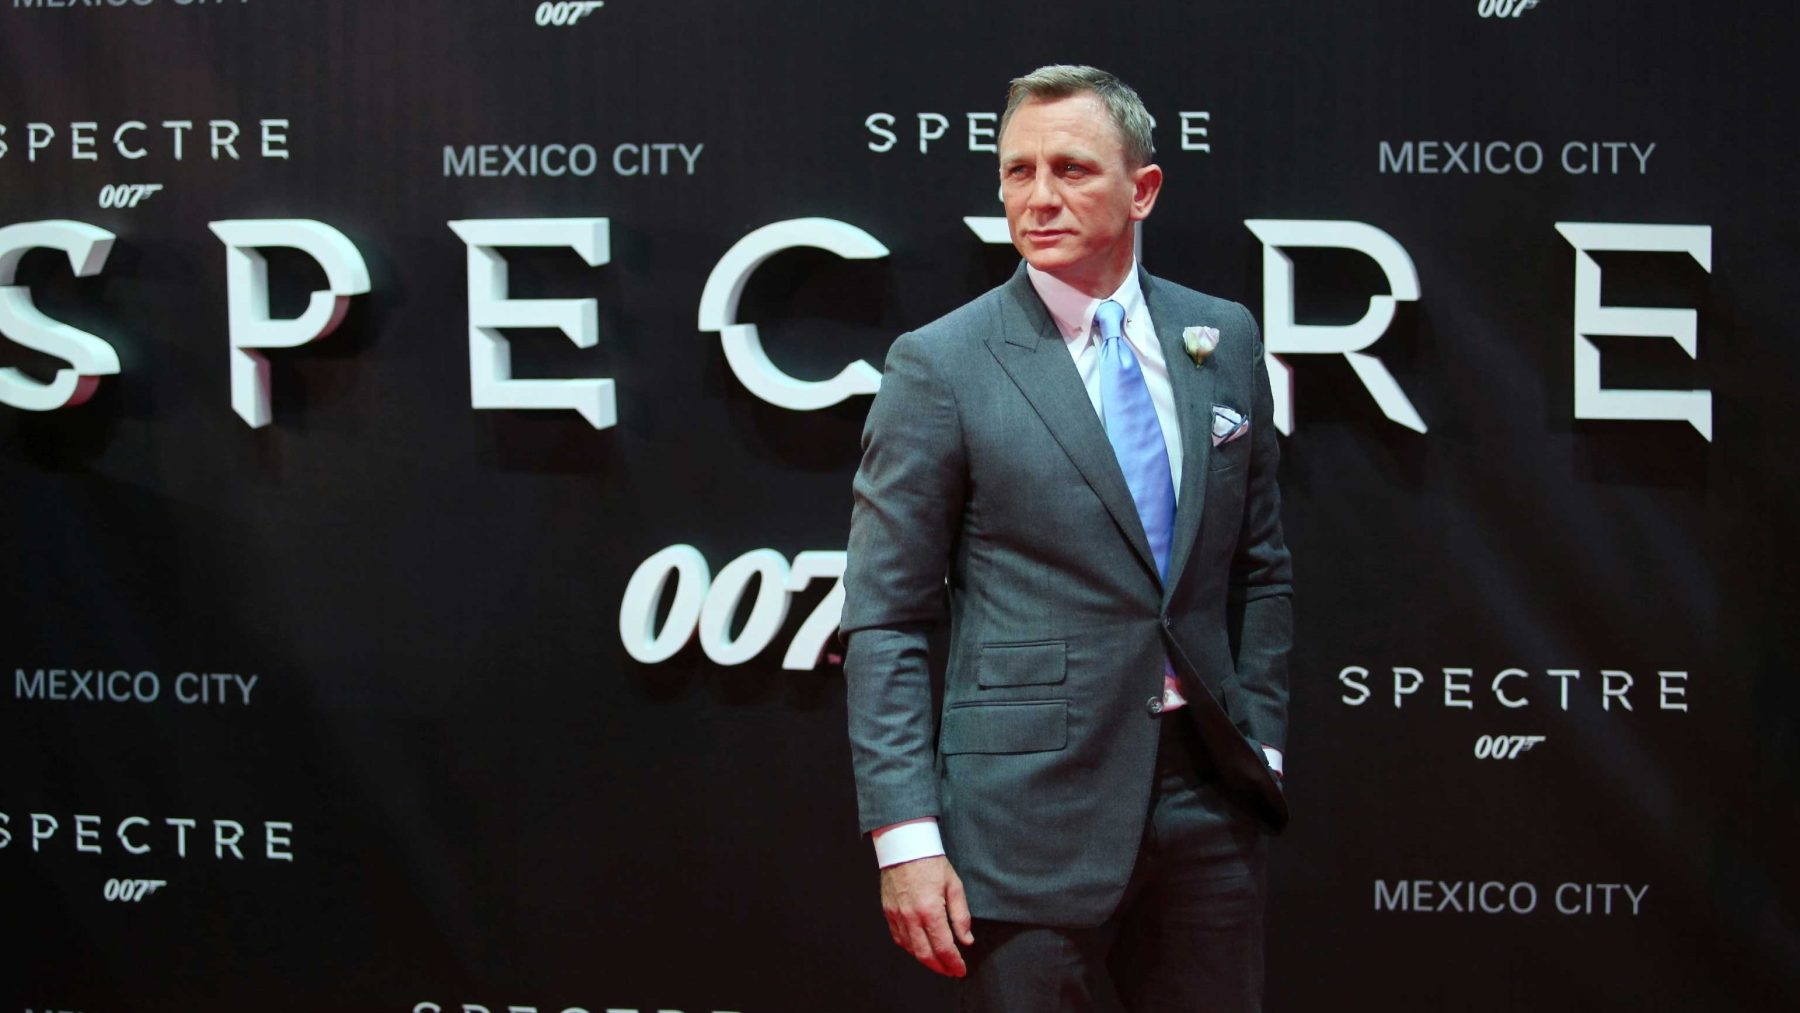 Daniel Craig attends the red carpet of the 'Spectre' film Premiere at Auditorio Nacional on November 02, 2015 in Mexico City, Mexico. (Getty)